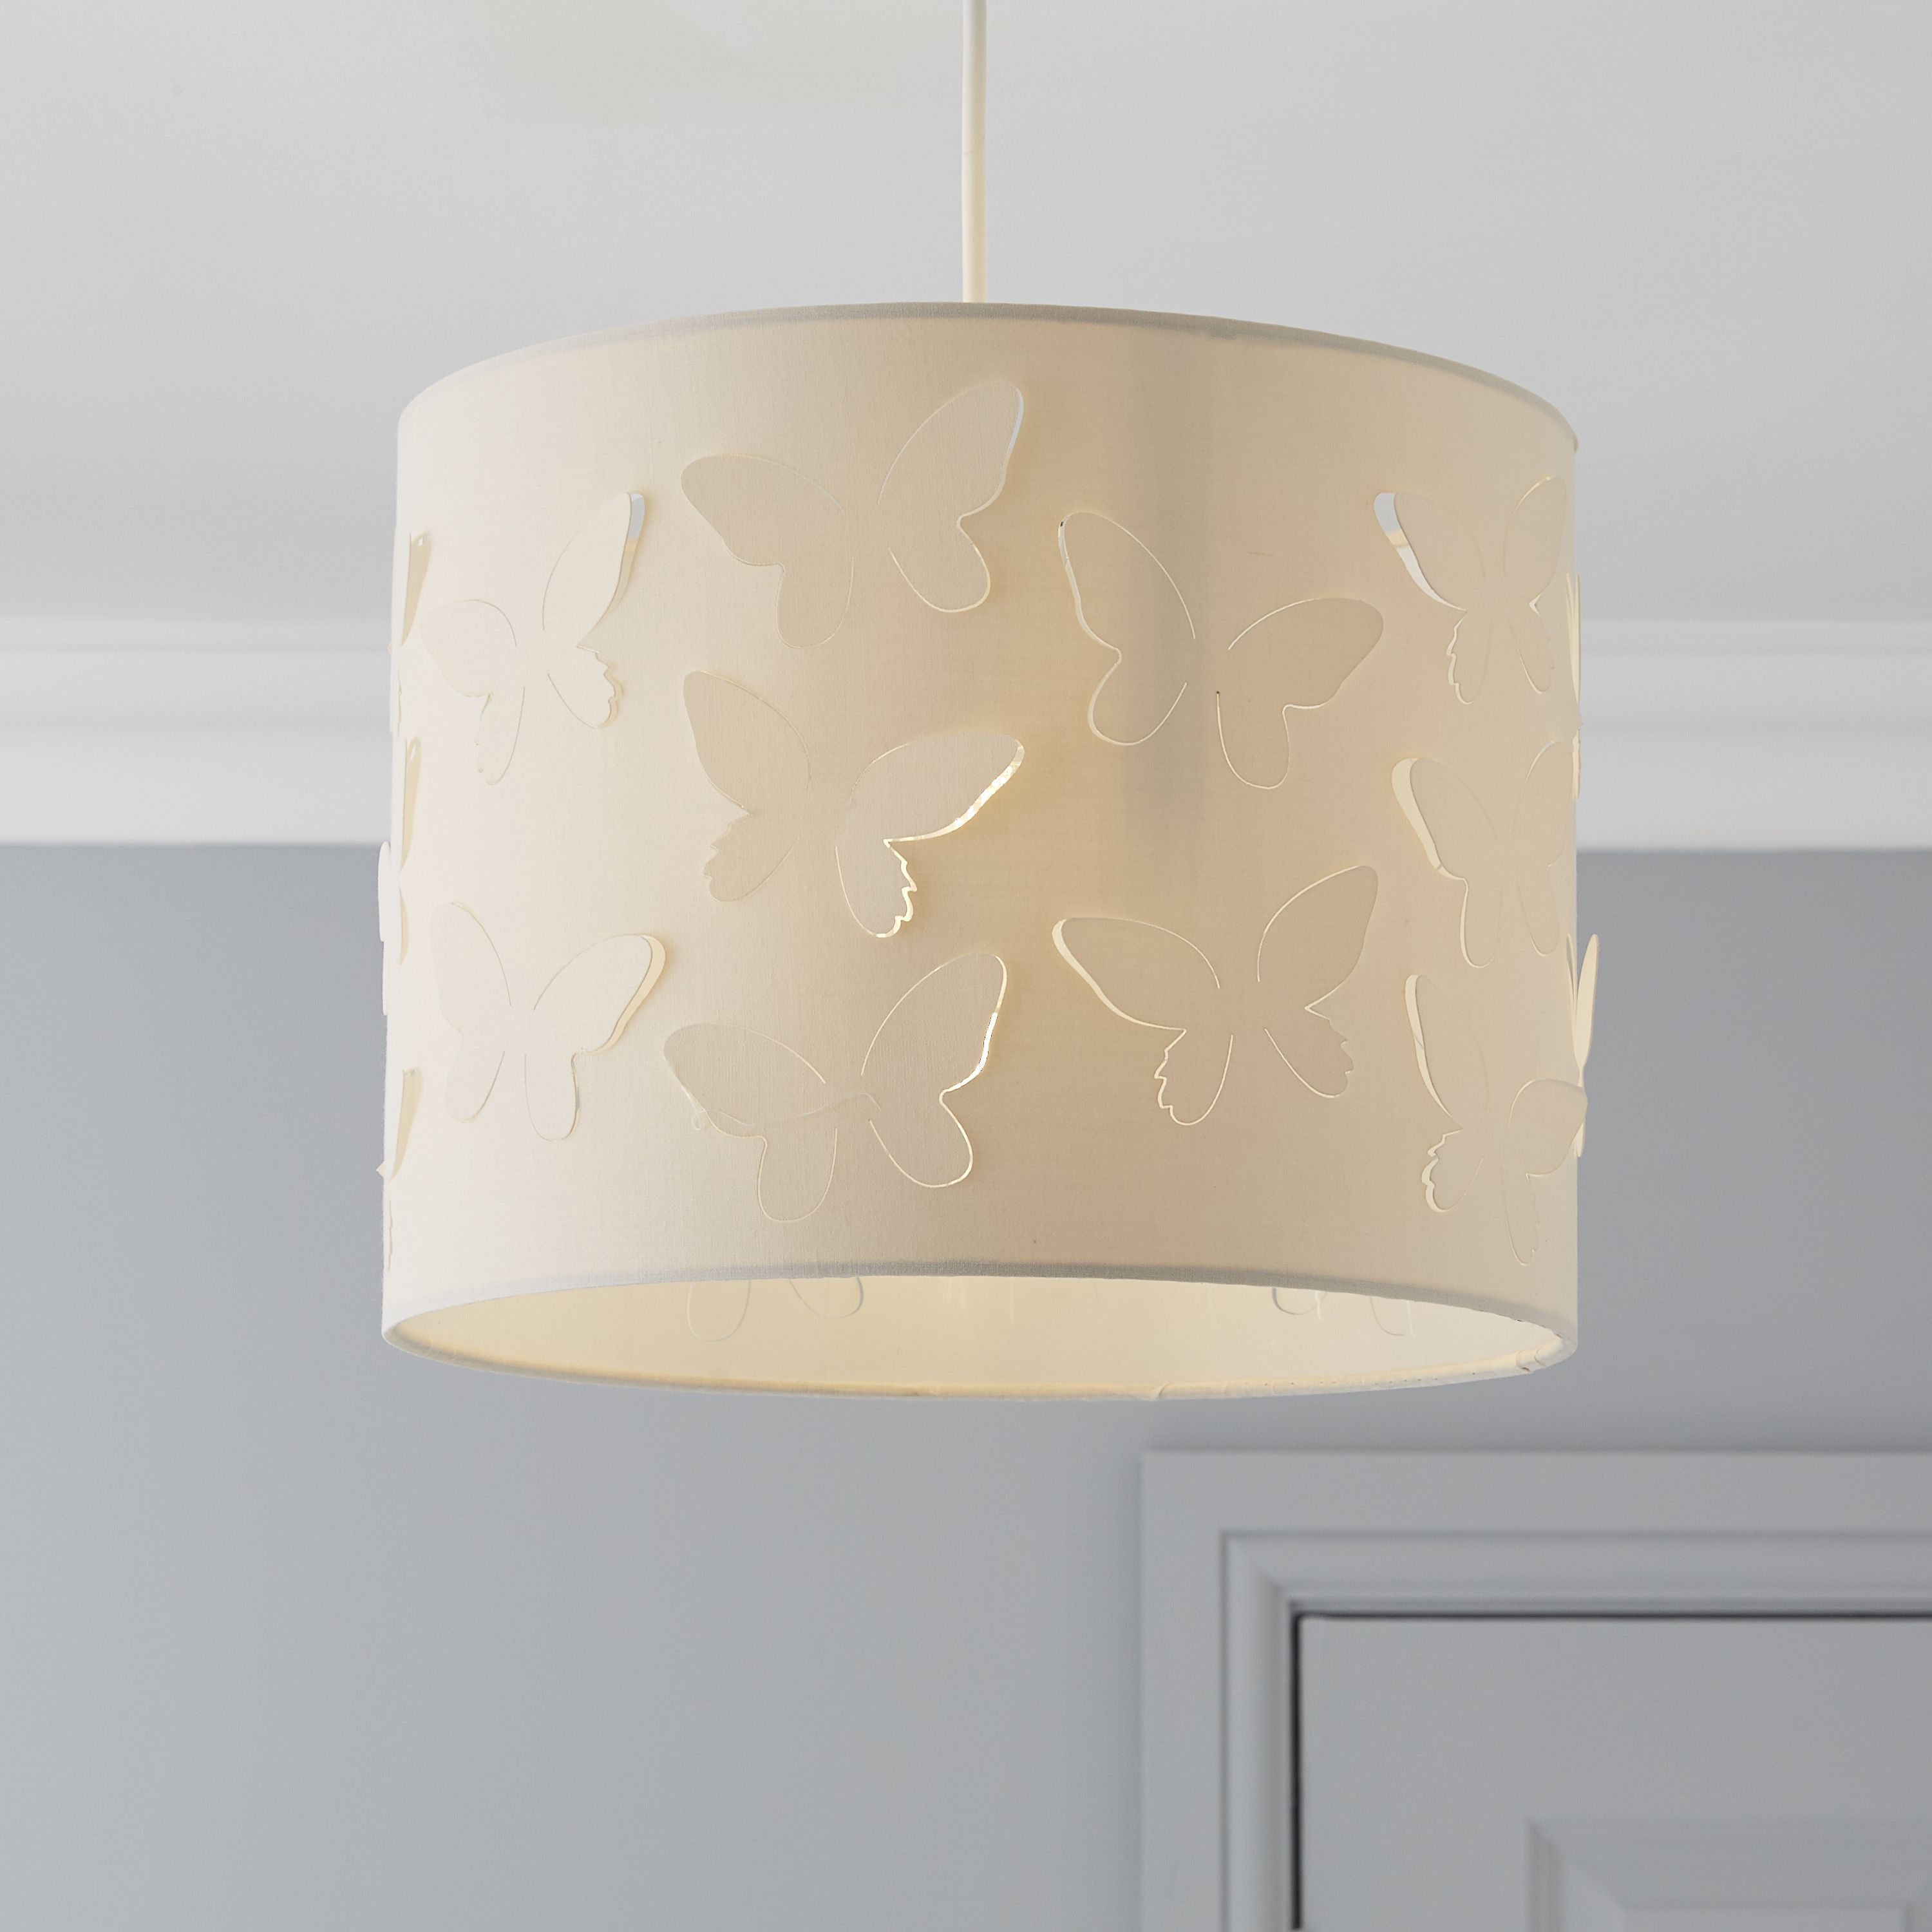 Large cut out dome metal lighting pendant shades cream - Colours Carriera Cream Butterfly Cut Out Light Shade D 30cm